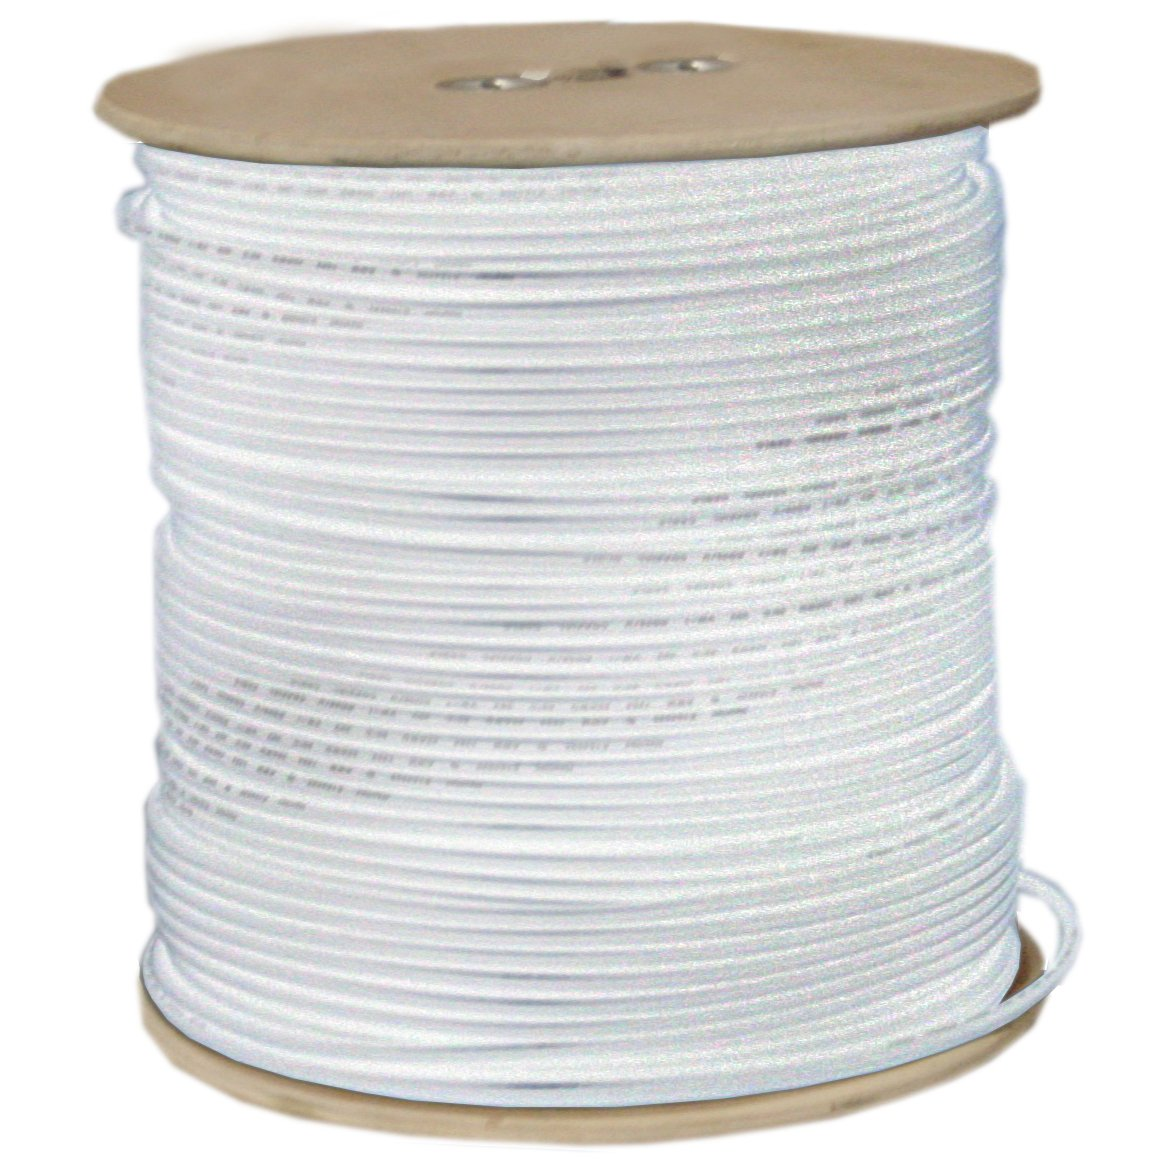 1pk 1000ft Spool White ACCL 18 AWG RG6 Coaxial Cable Solid Core